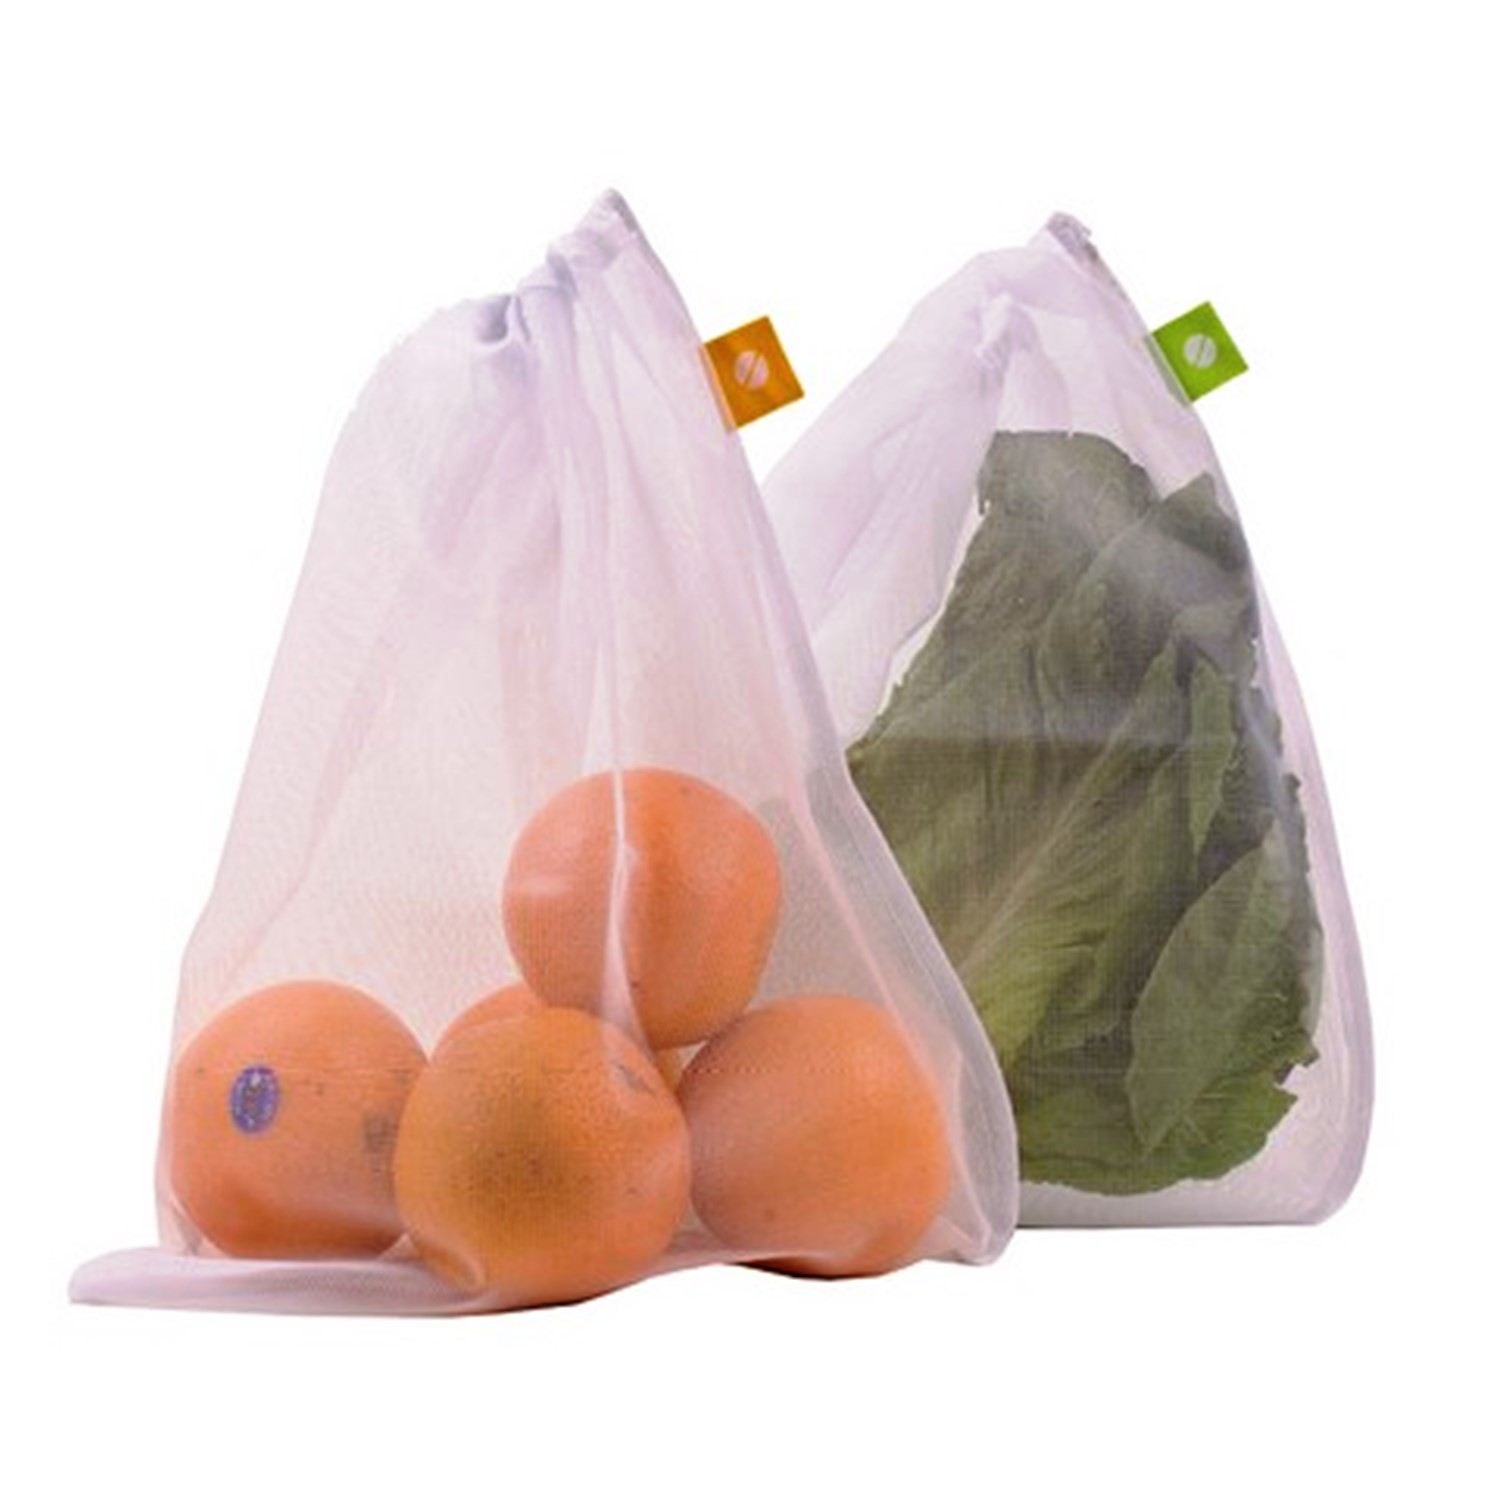 premium reusable eco friendly mesh produce bags with drawstring net bag for vegetables and fruits